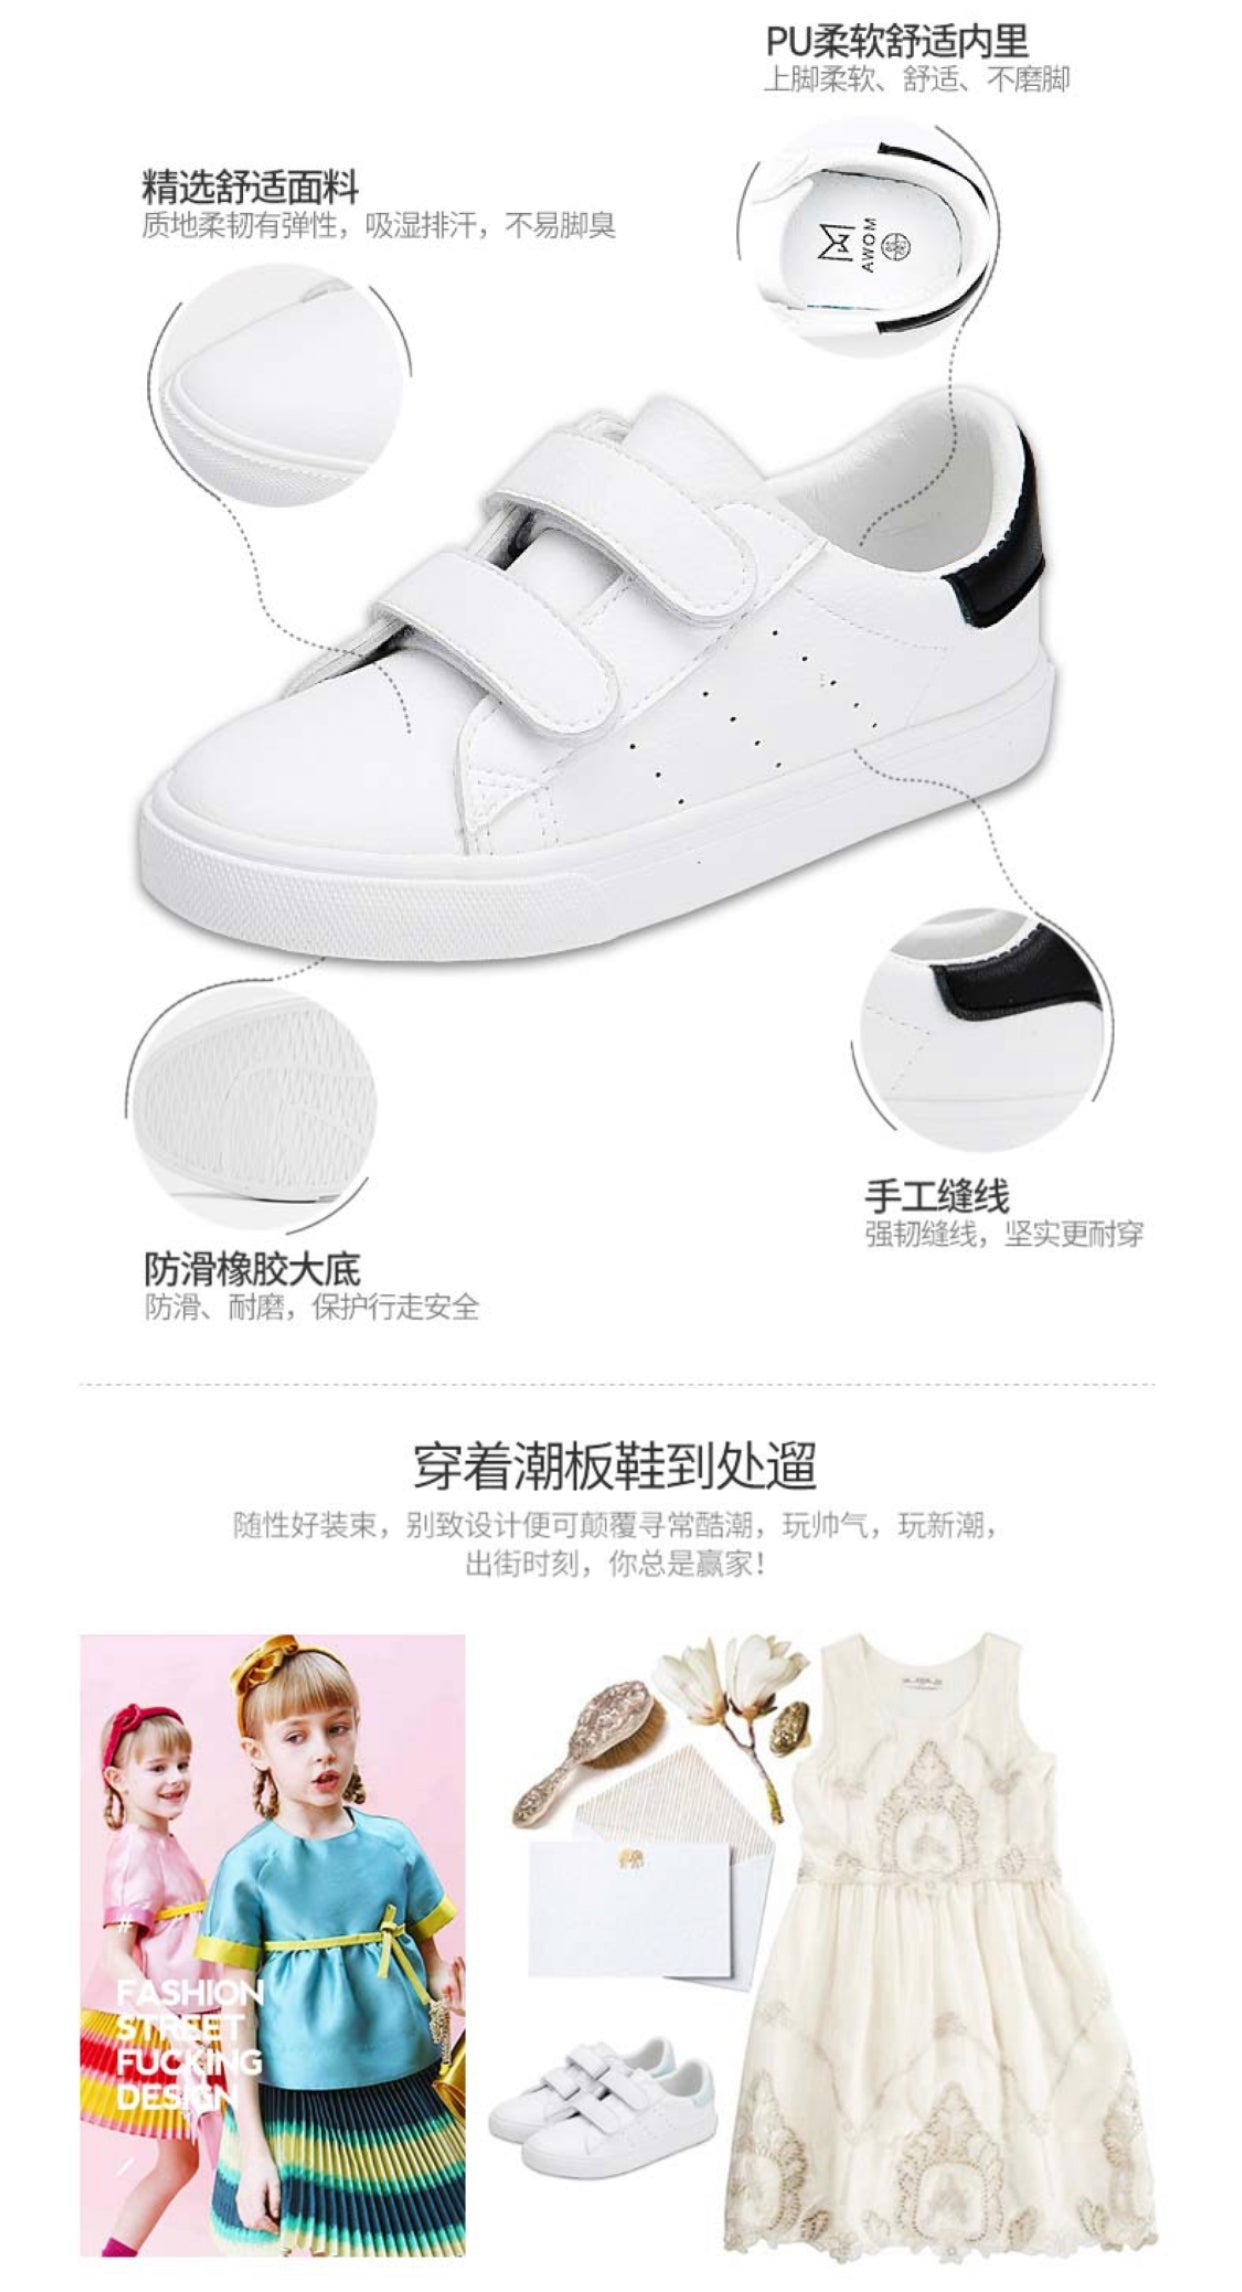 Mowa Daily Life white low top Kids sneakers